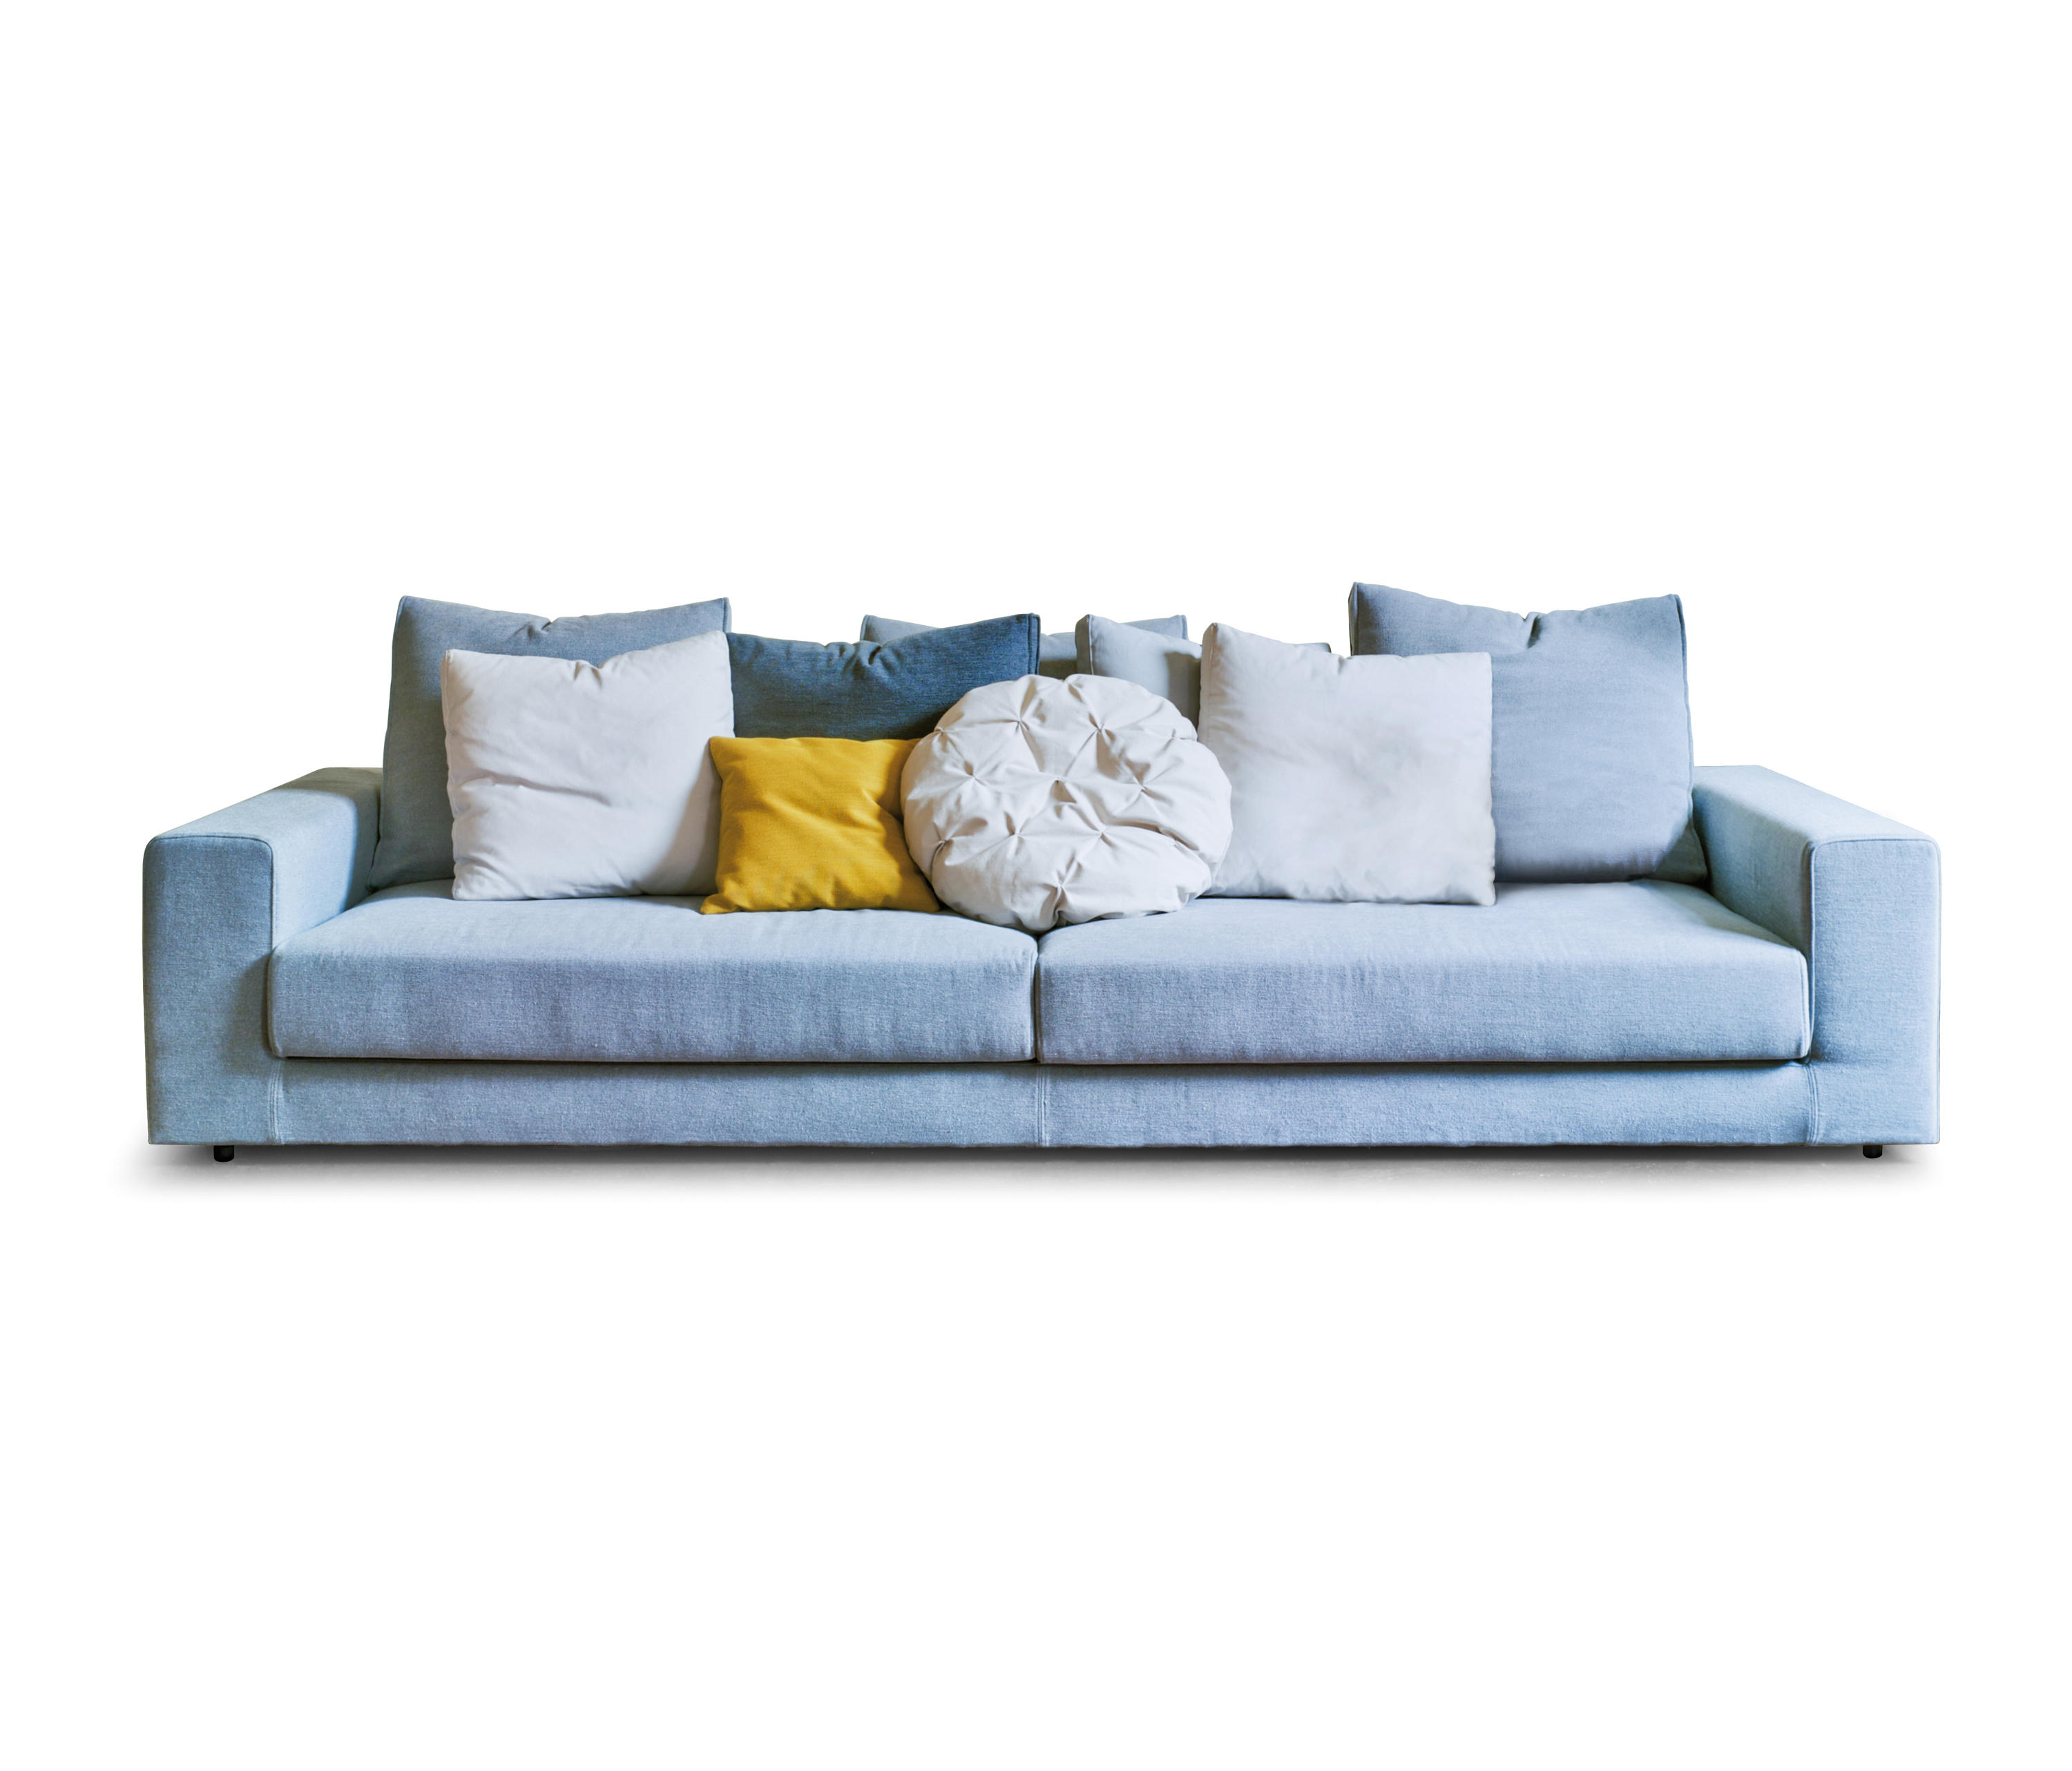 CITY CASUAL - Sofas from Sancal | Architonic